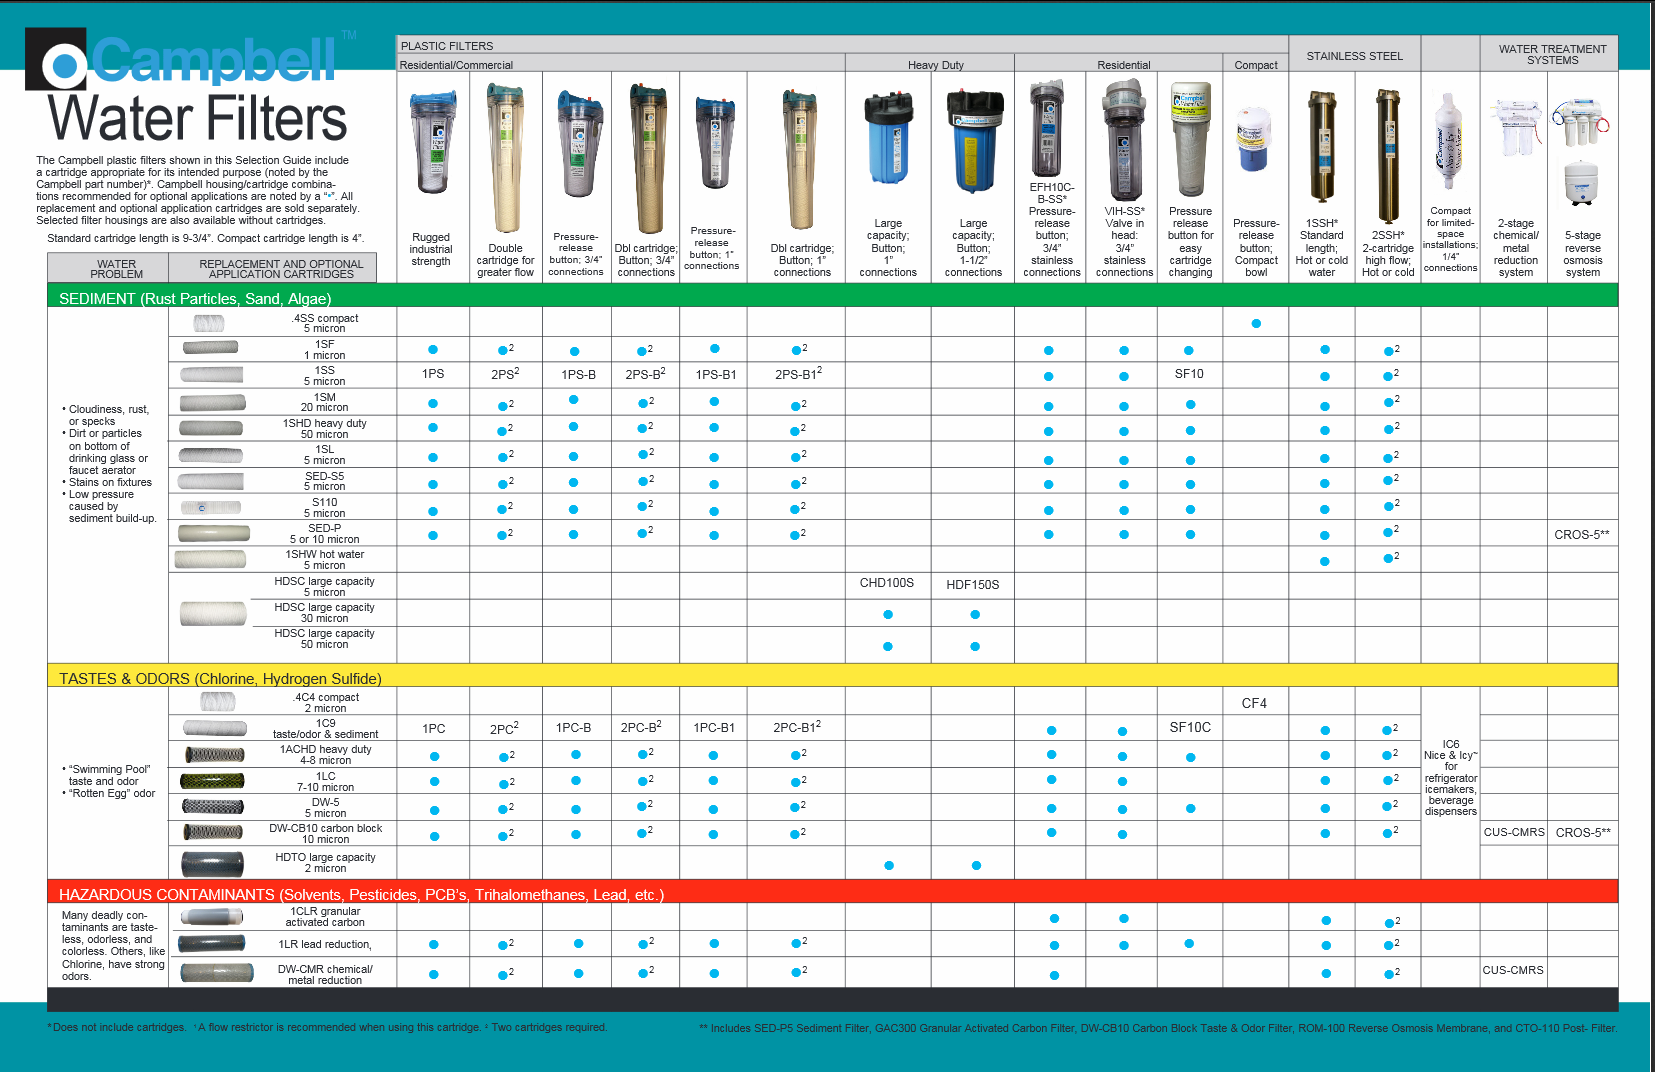 campbell water filters comparison chart - Water Filter Cartridge